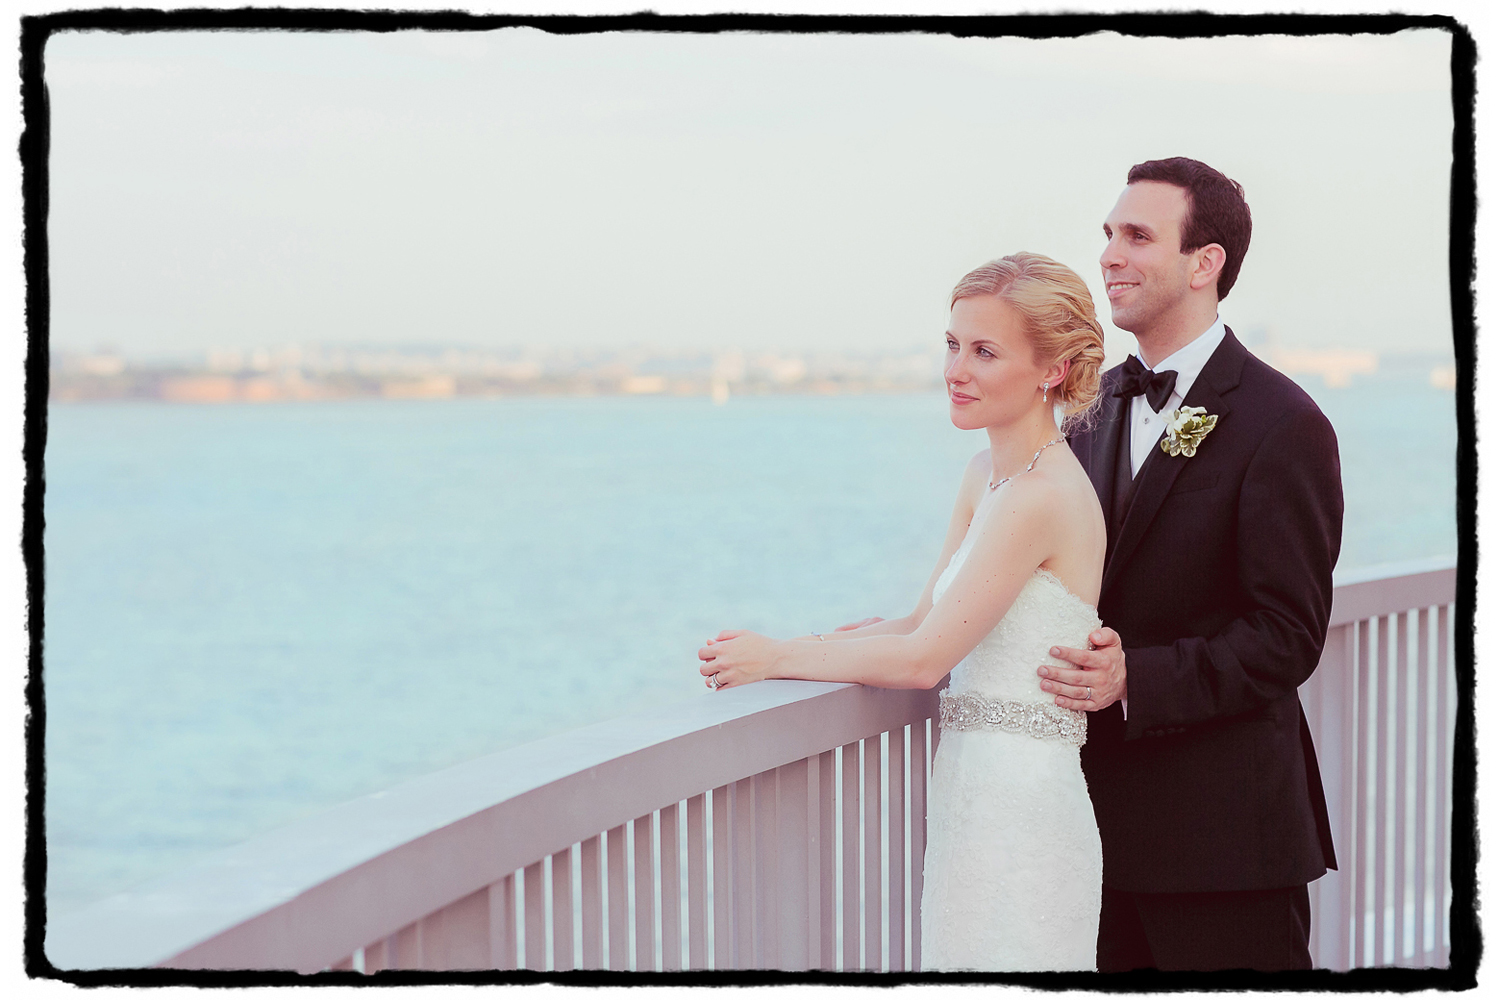 Gena and Josh share a quiet moment to enjoy the glittering NYC skyline across the river as the sun goes down at the Hyatt in Jersey City.